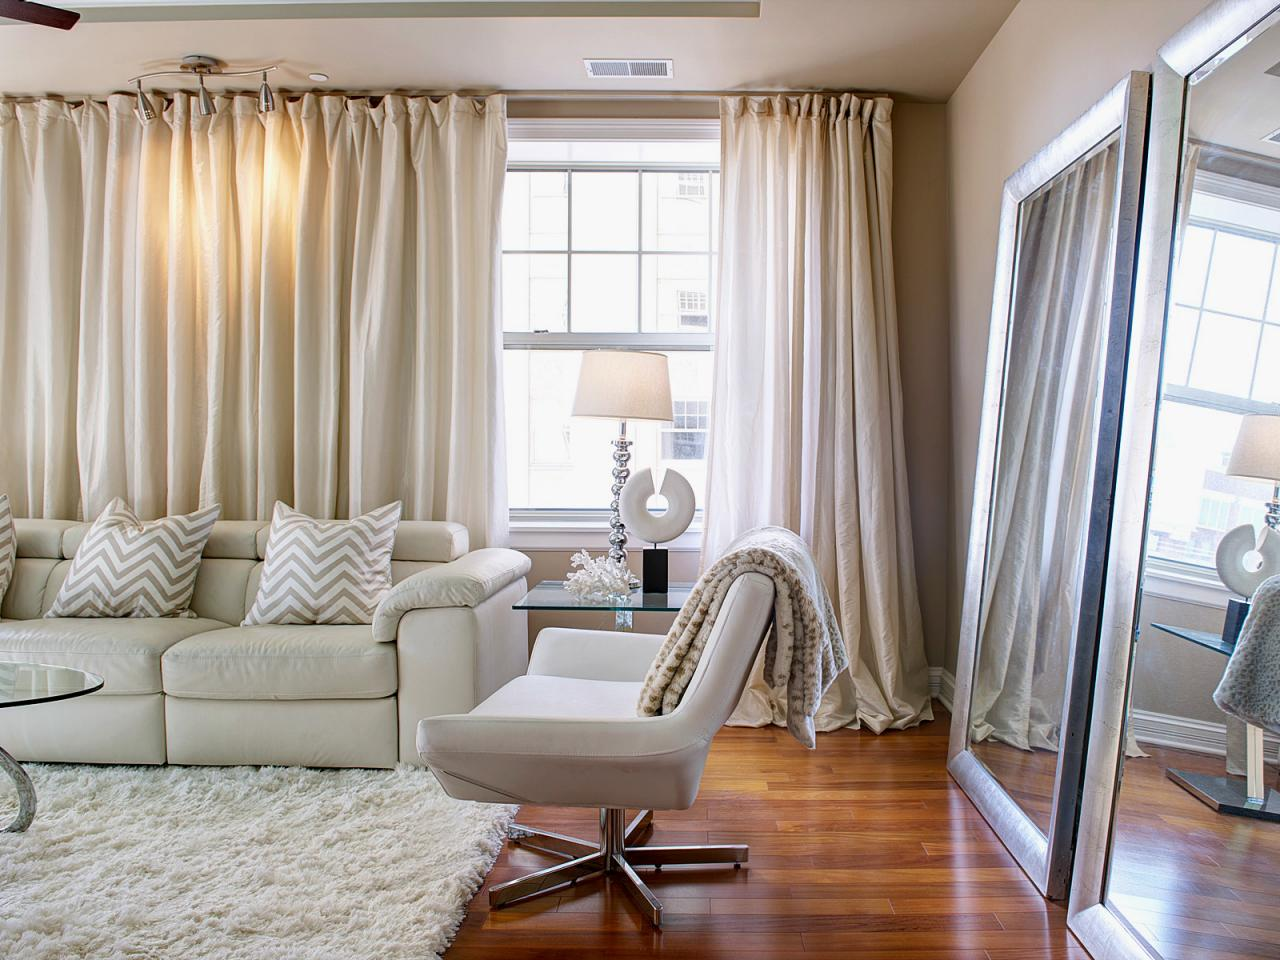 Curtain designs living room - Amusing Design Of The Living Room Drapes With White Rugs And White Sofa Added With Brown